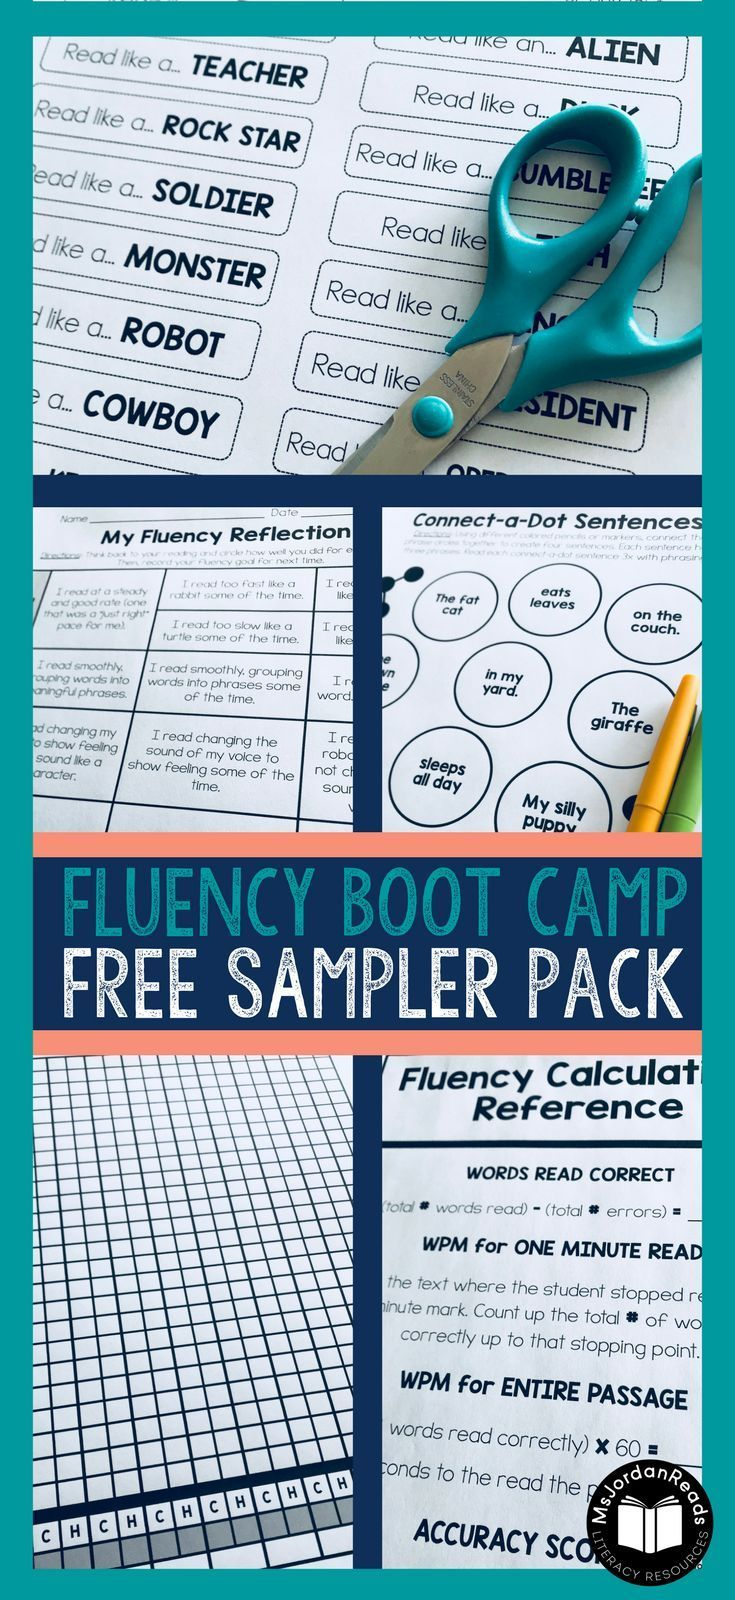 Subscribe To Receive This Free Fluency Sampler From Msjordanreads Over 15 Pages Of Fluency Resources To U Reading Fluency Passages Fluency Fluency Passages [ 1600 x 735 Pixel ]